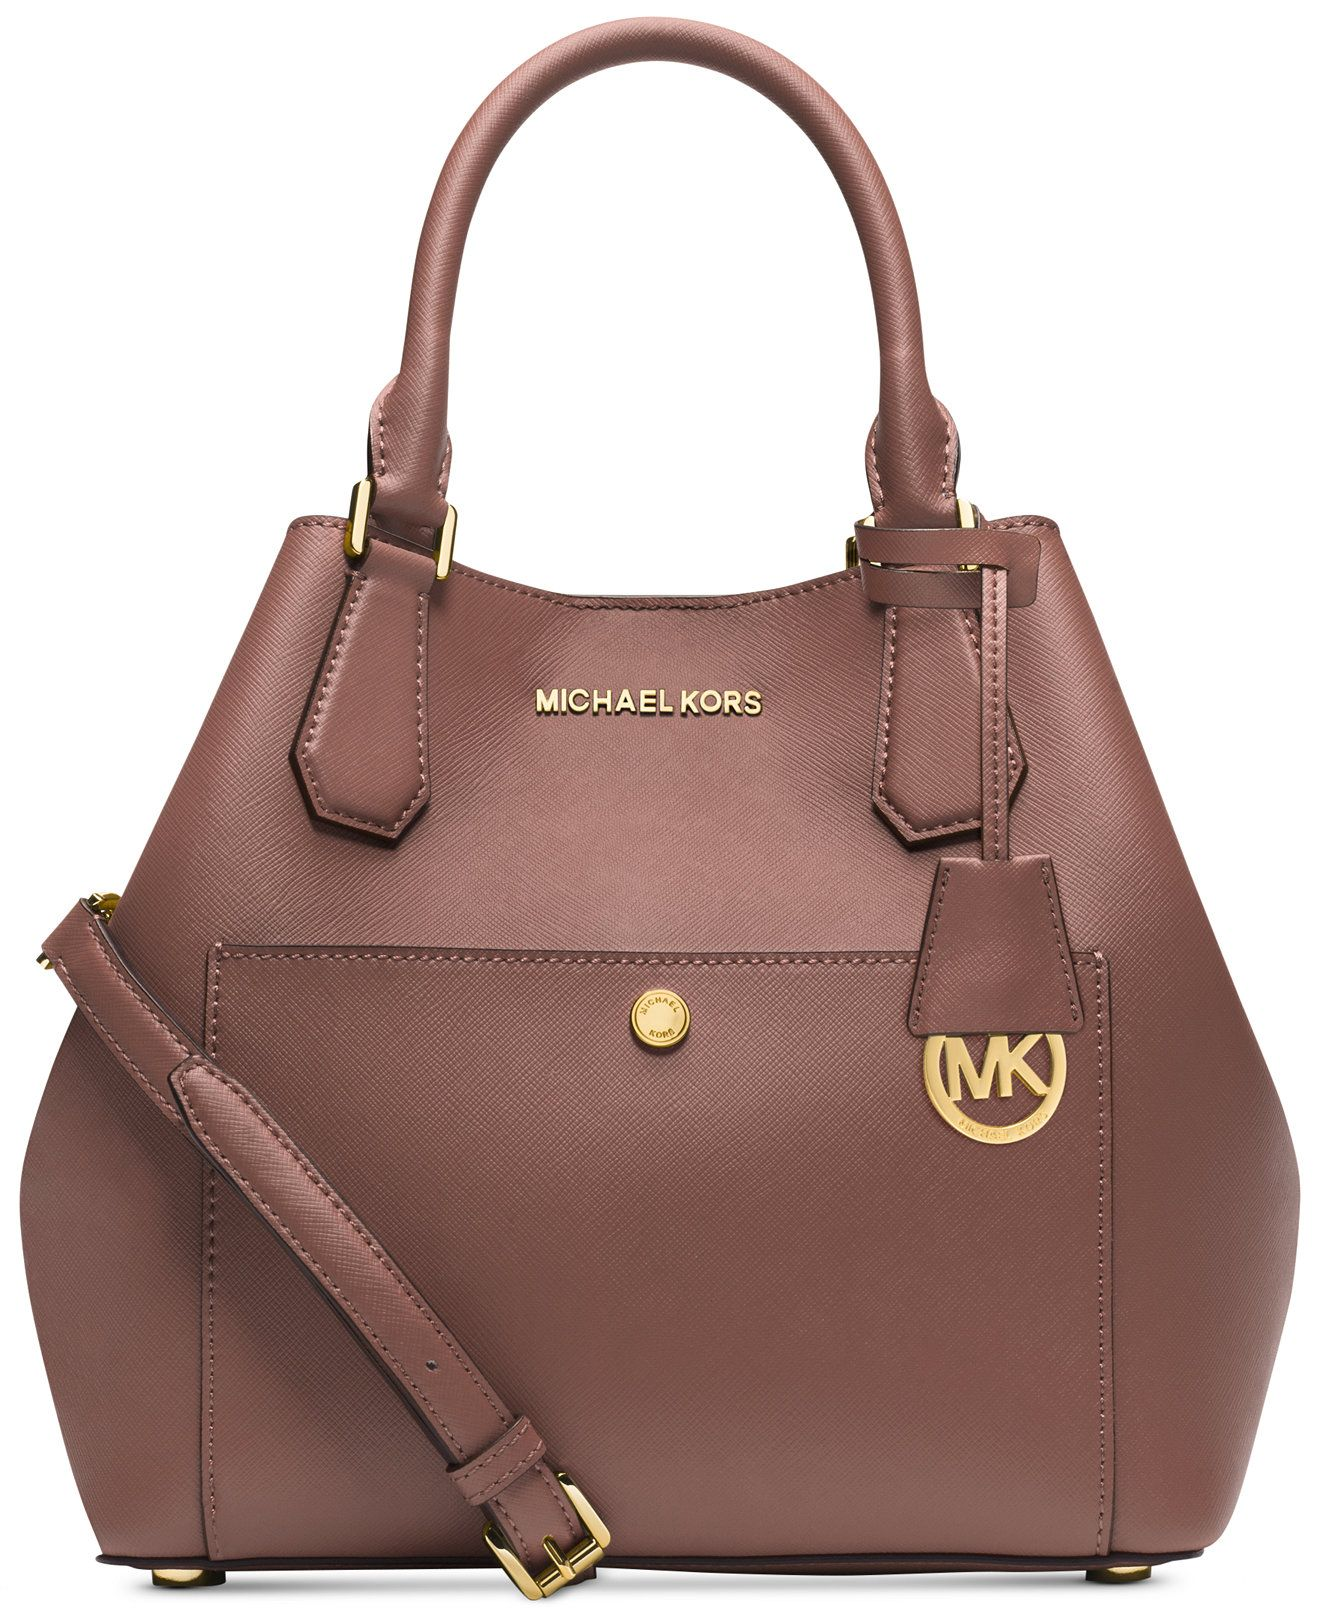 rebekah on bags handbags michael kors michael kors bag michael rh pinterest com